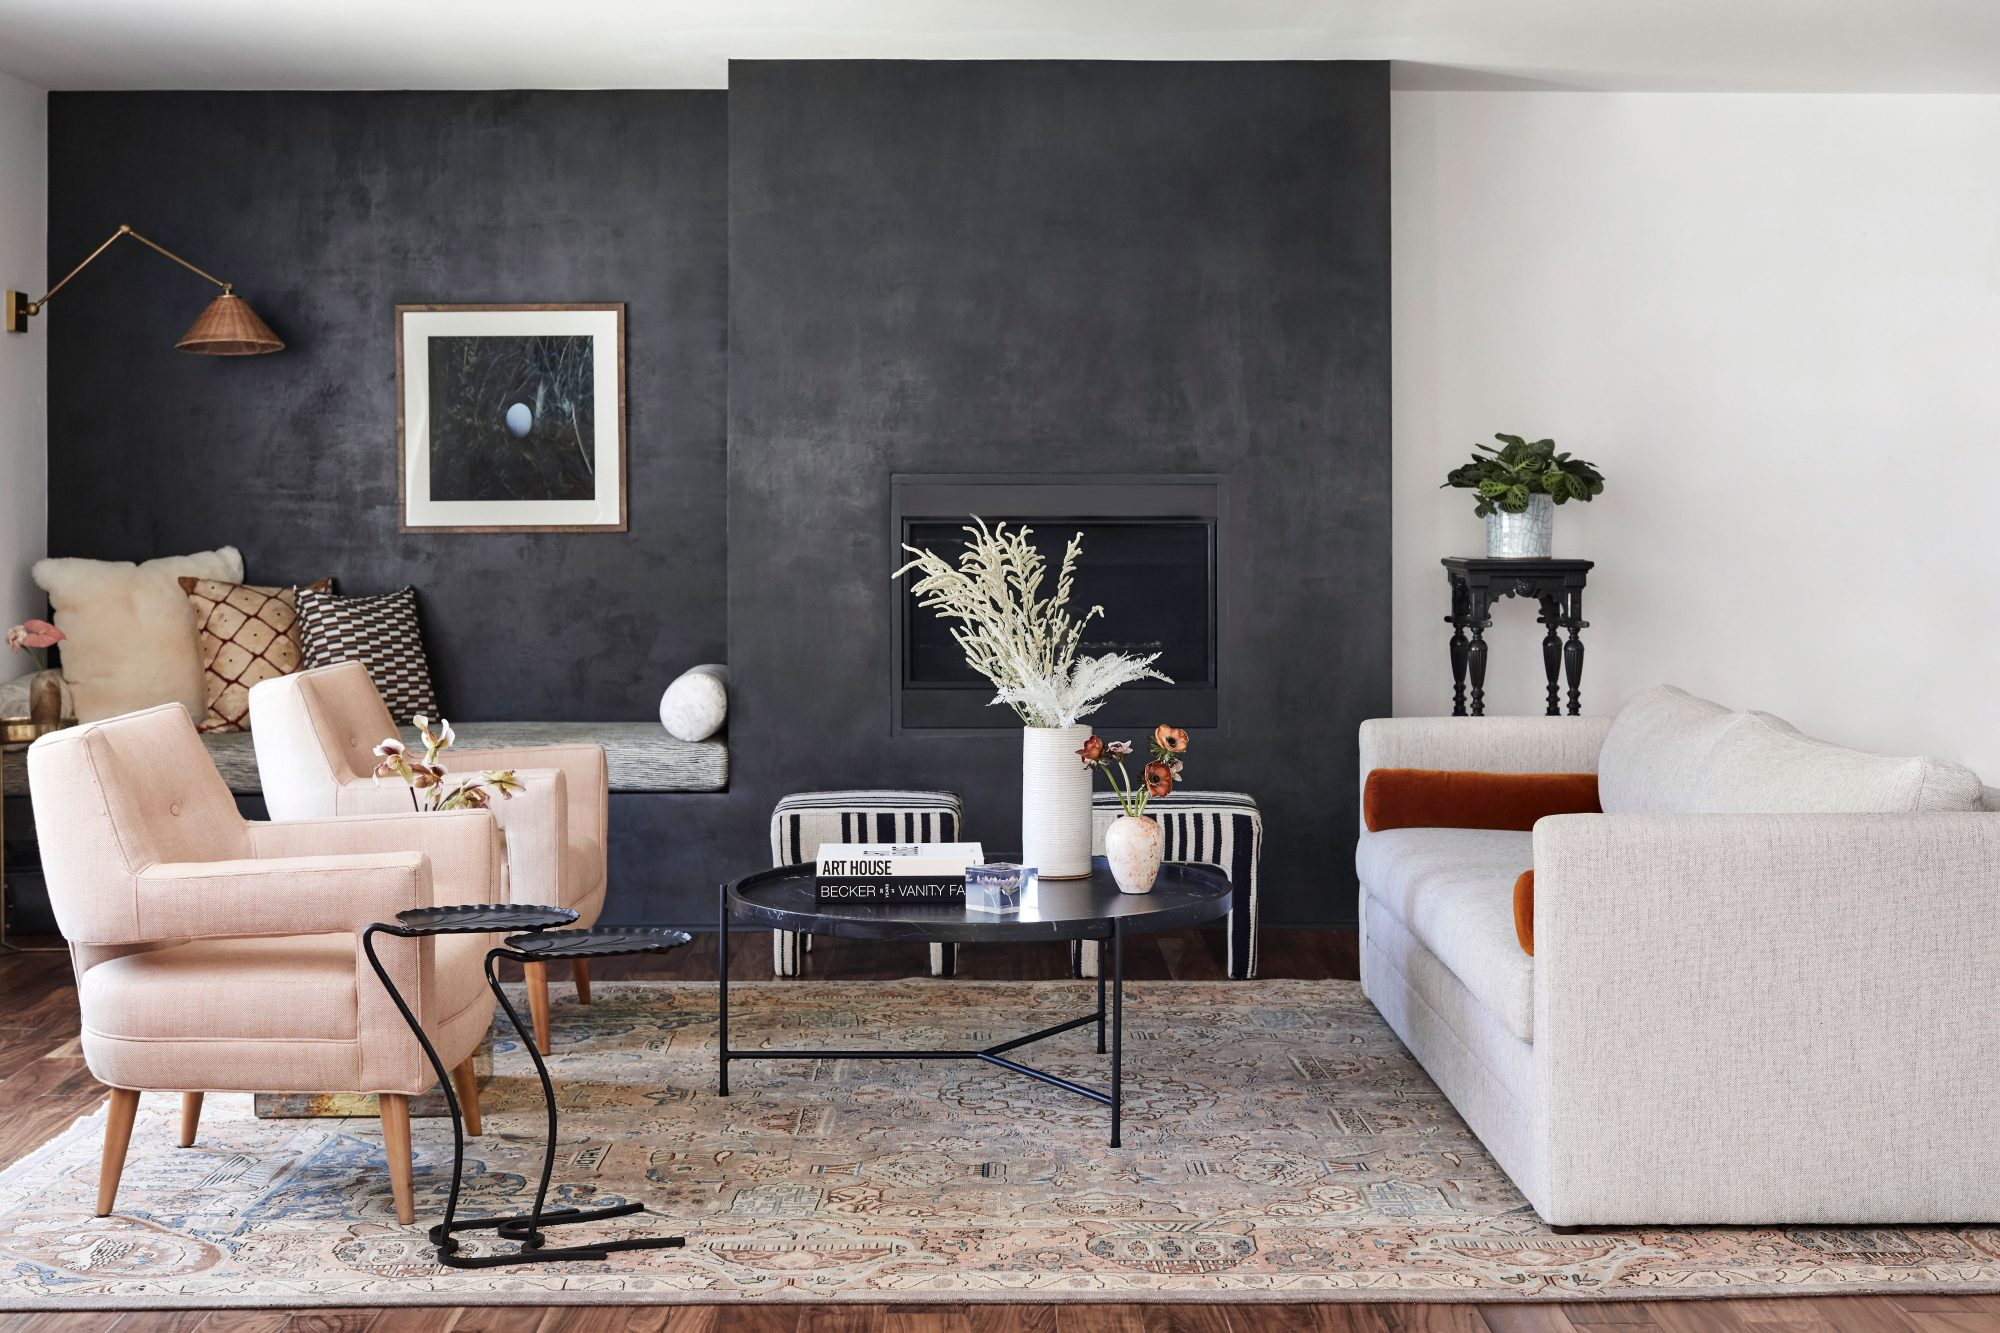 Portola Paints and Glazes Fade to Black Roman Clay in Living Room with Fireplace